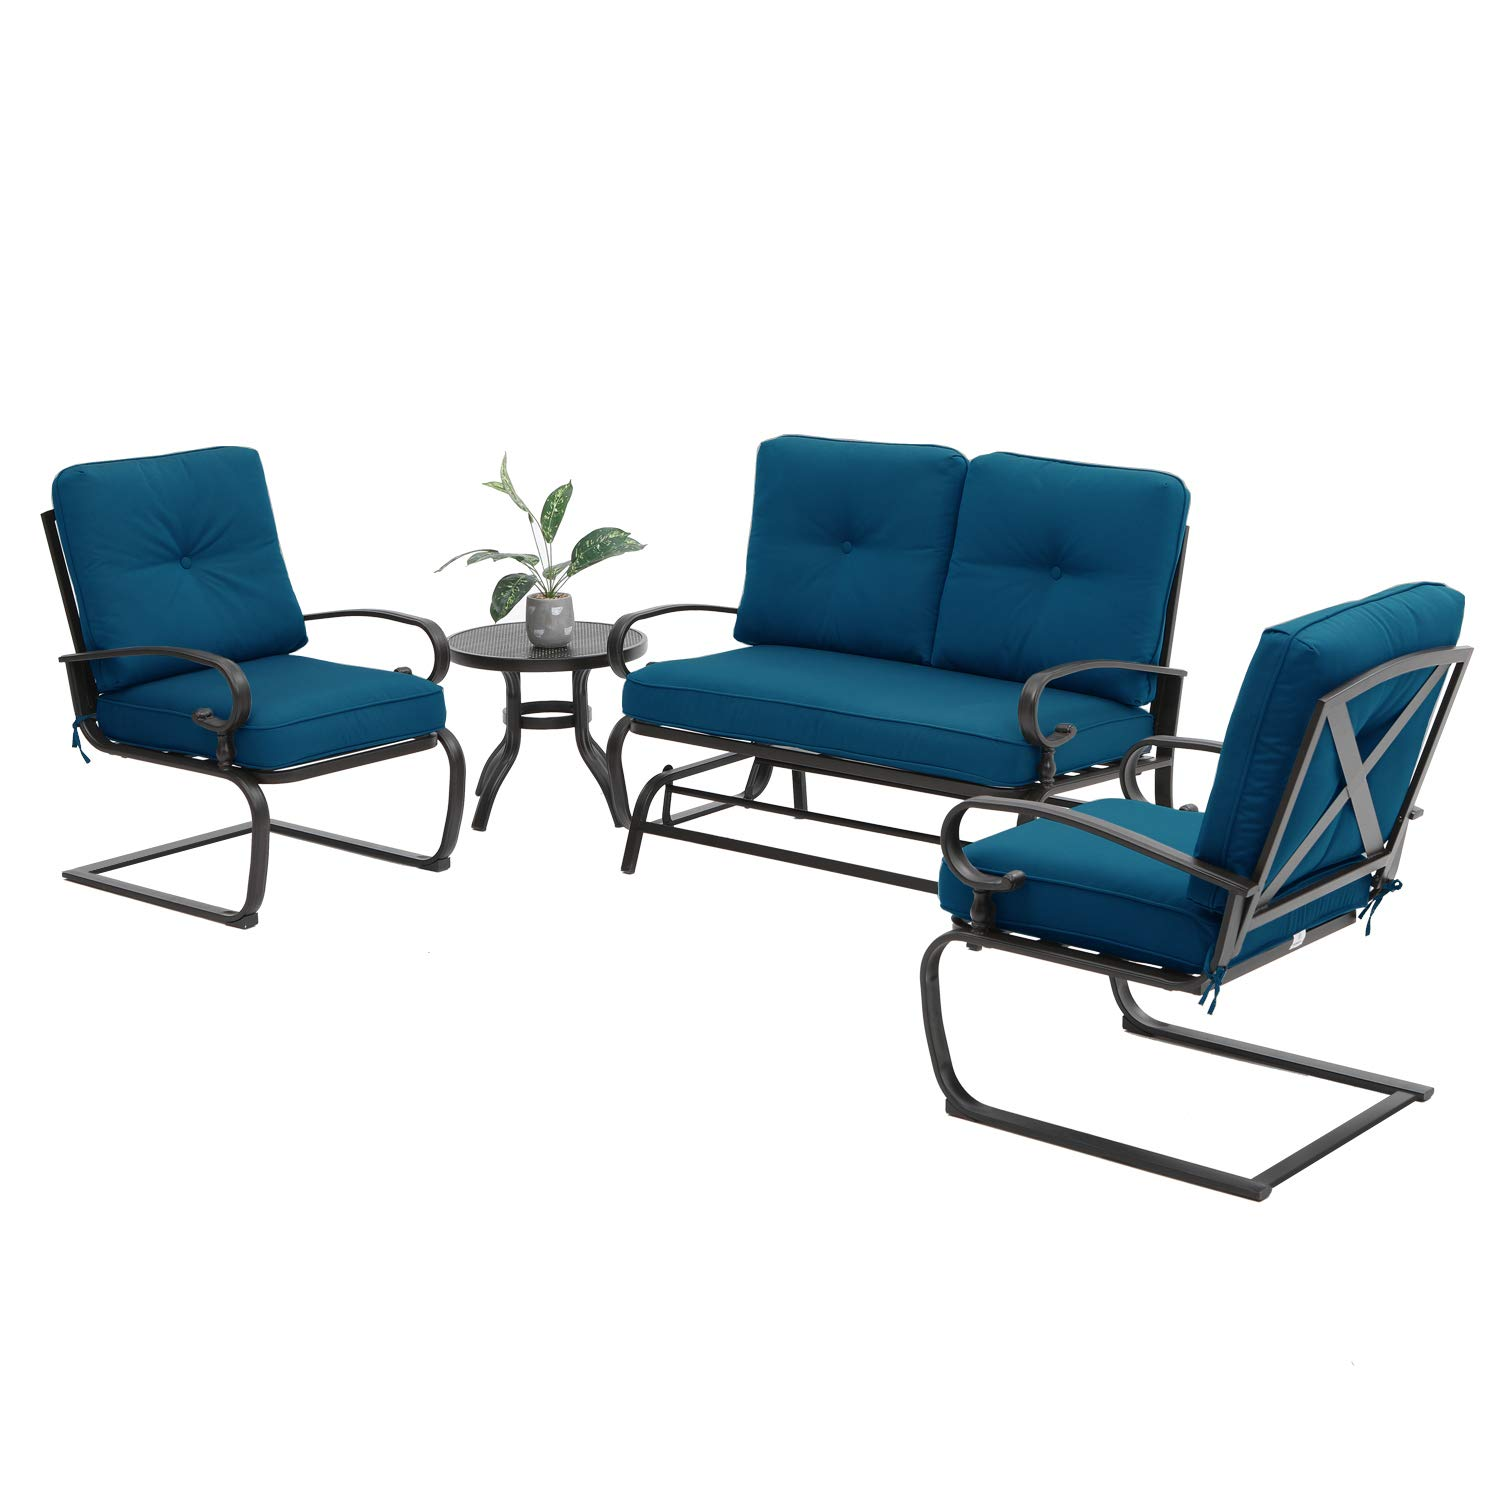 Incbruce 4Pcs Outdoor Patio Furniture Conversation Sets Loveseat, Bistro Table, 2 Spring Chair -Swing Glider Rocking Patio Bench and Spring Metal Lounge Chairs Sets with Peacock Blue Cushions